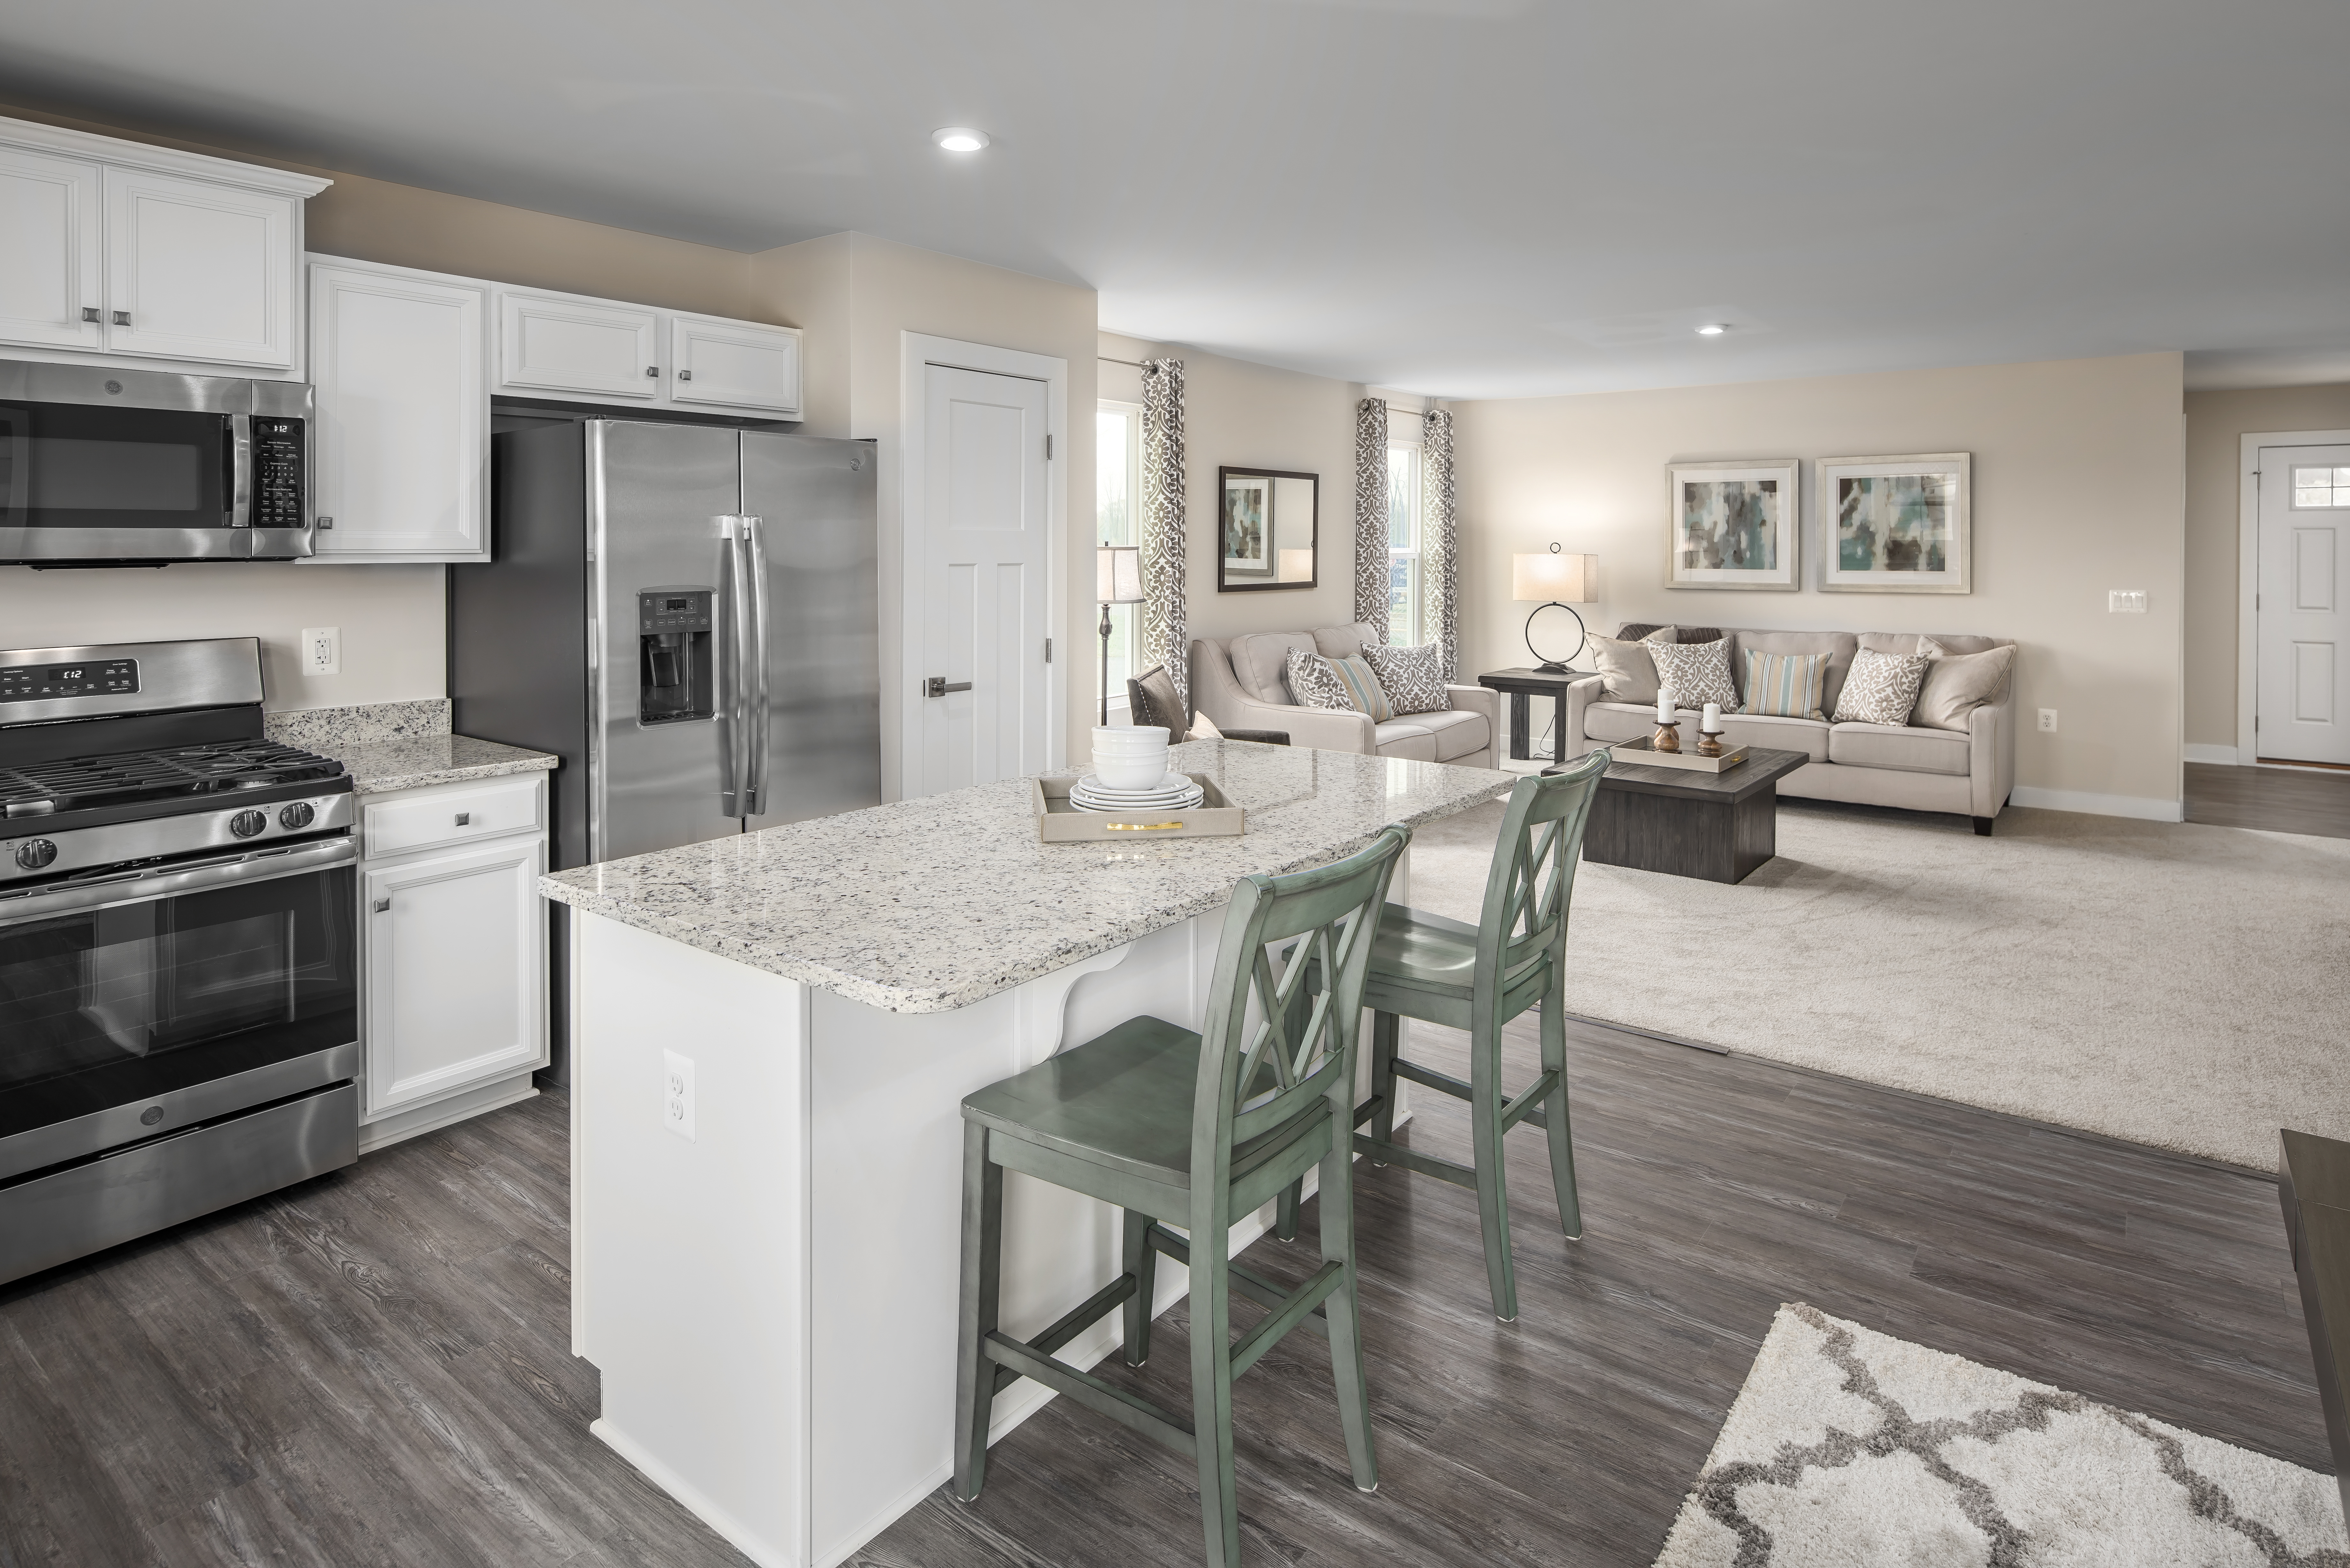 New Homes for sale at Martinsburg Lakes Ranch Homes in